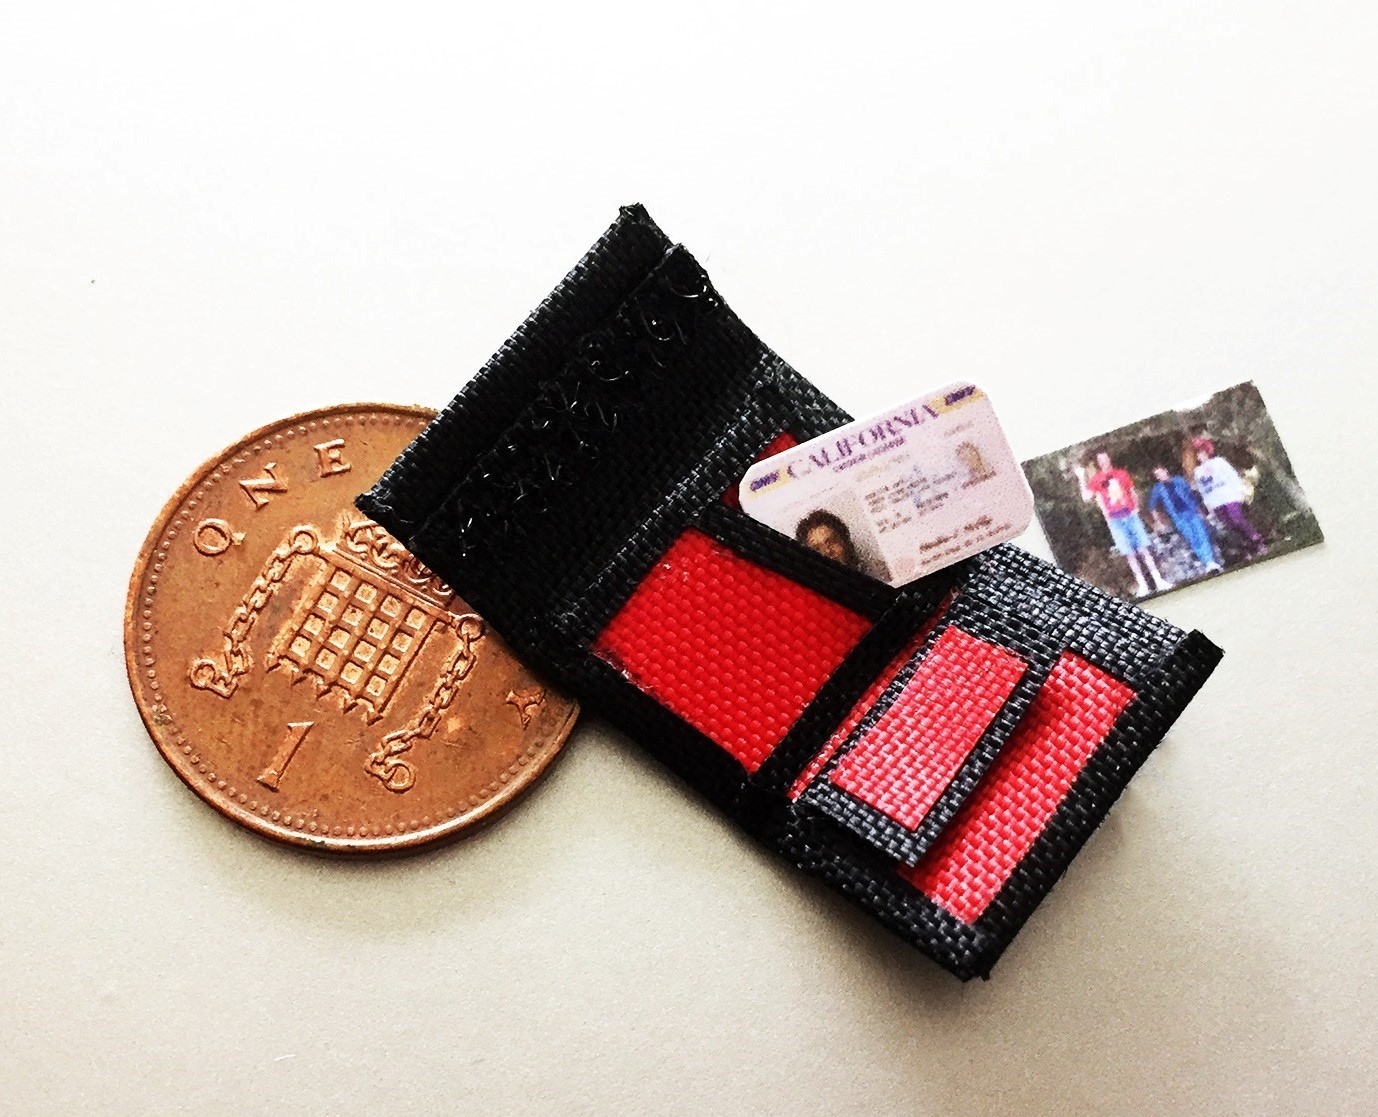 The Marty McFly Wallet 1:8 scale